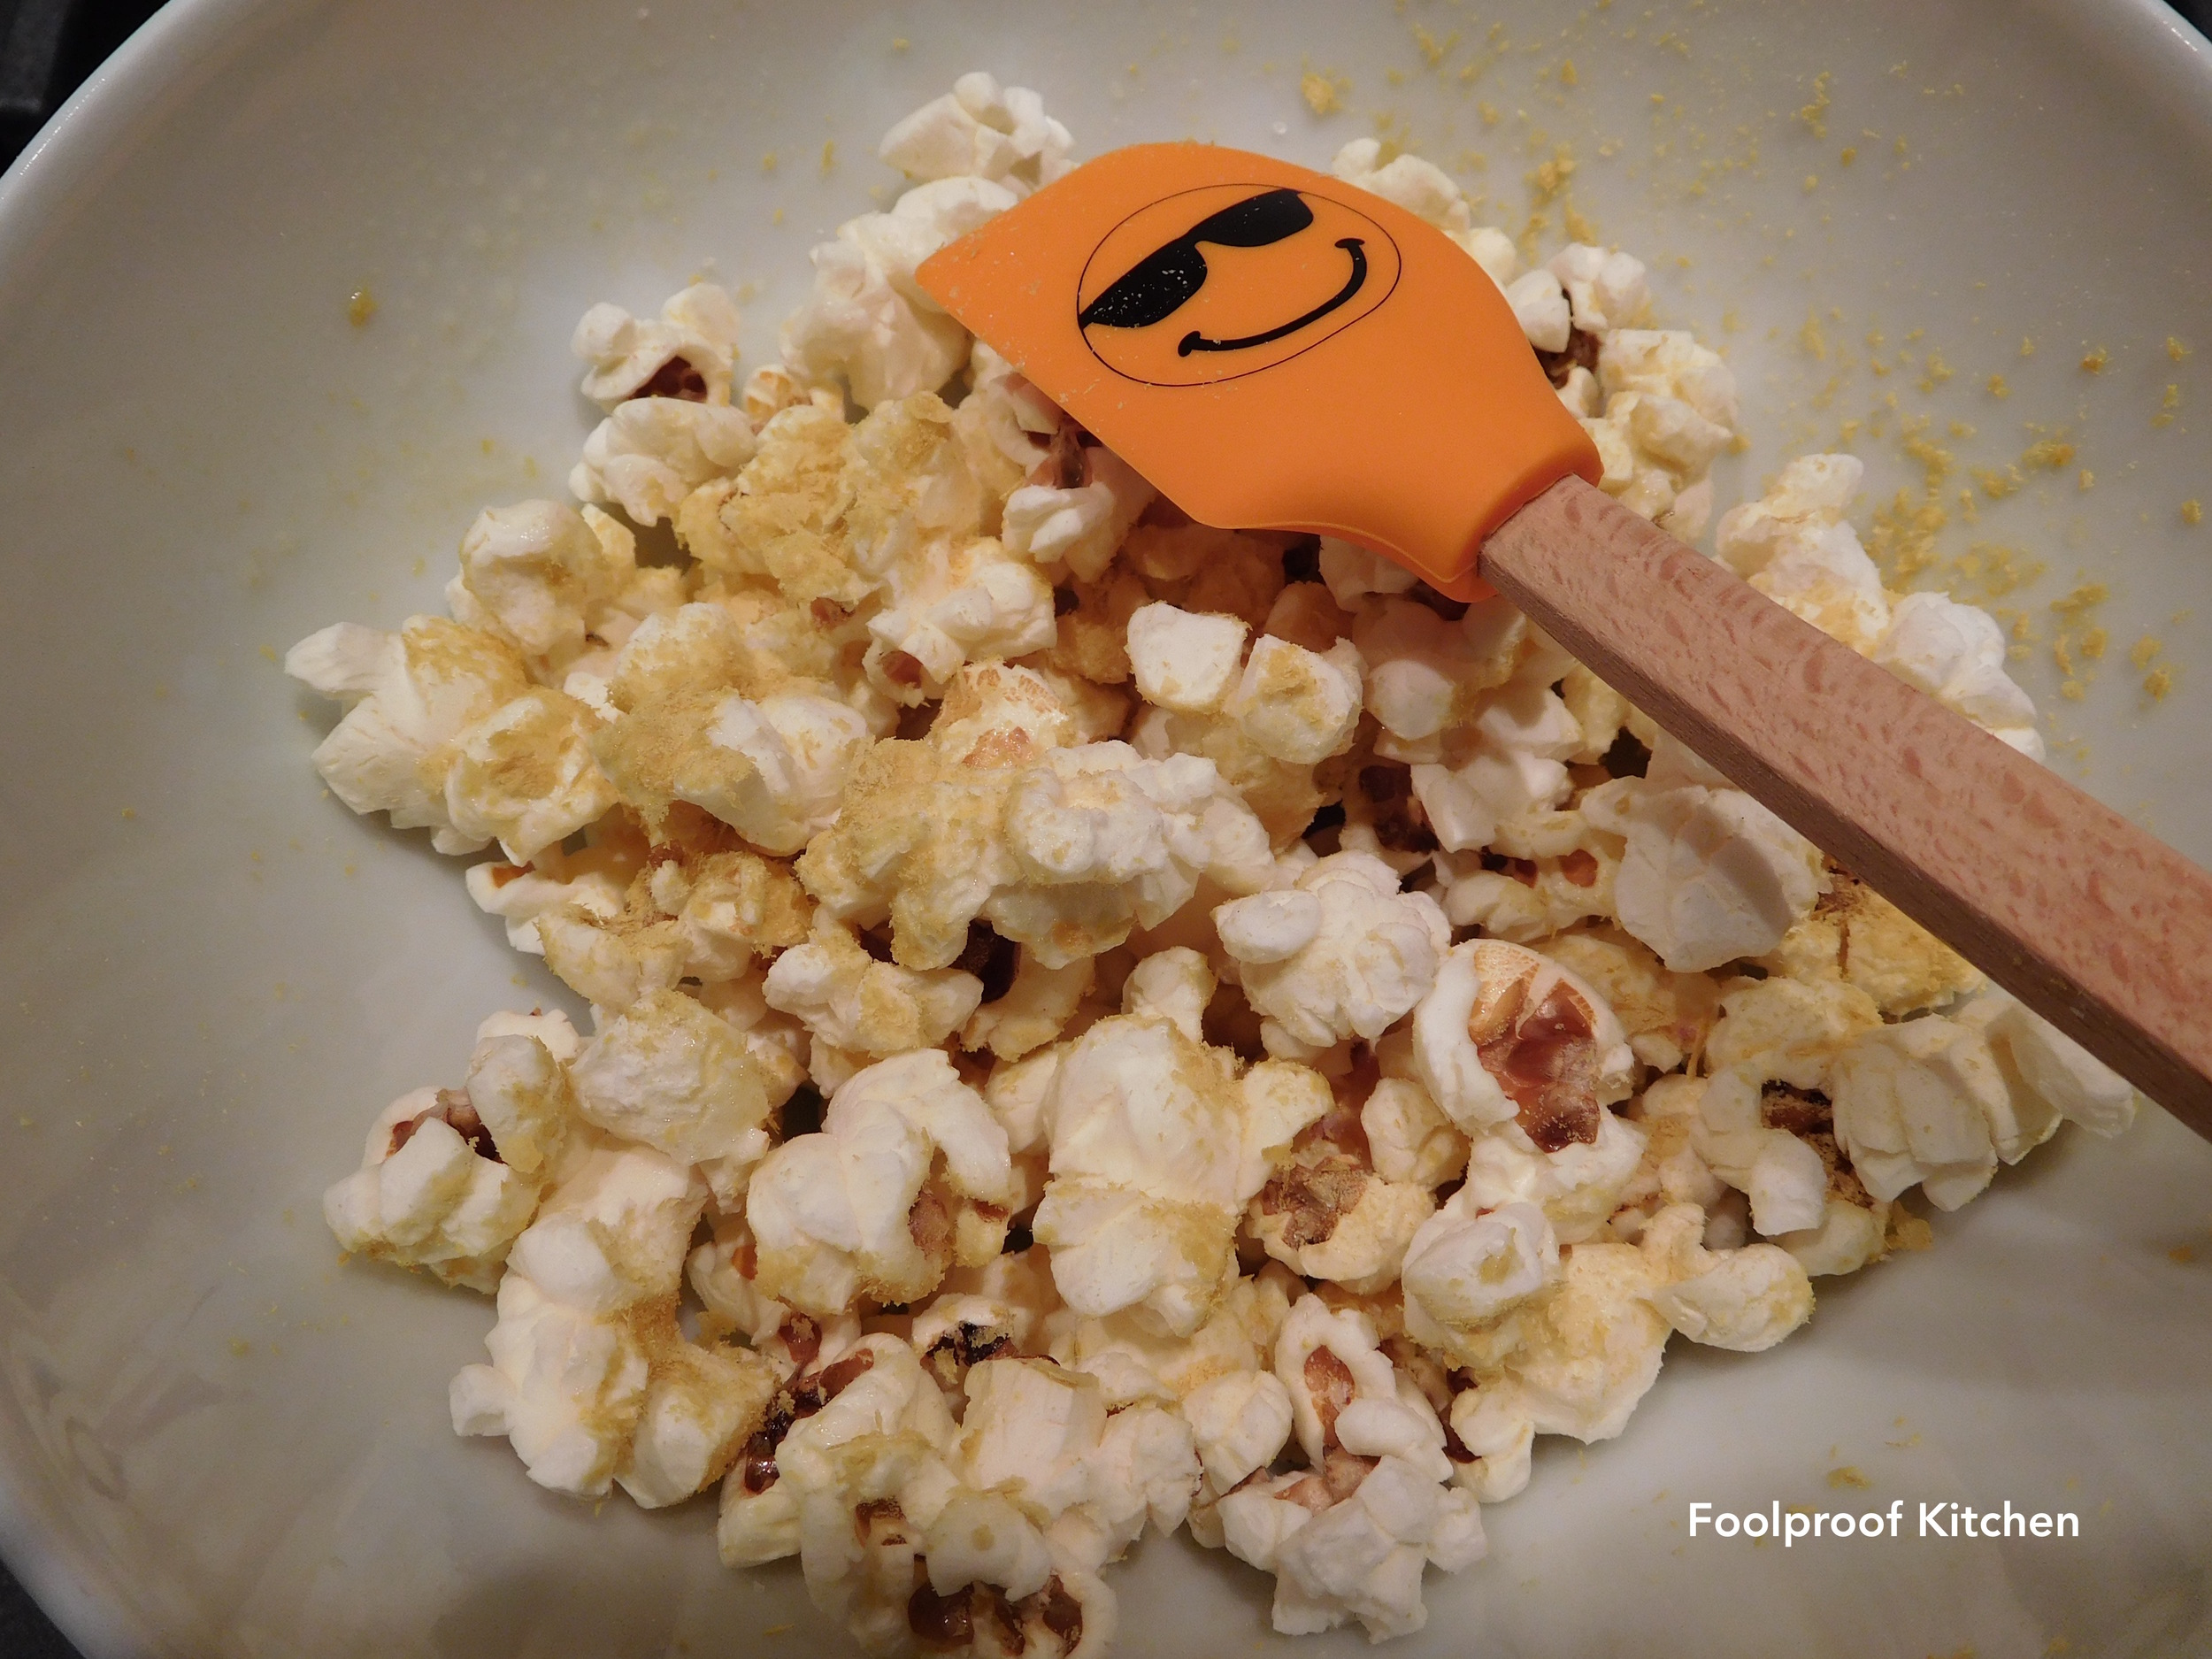 Popcorn with salt and nutritional yeast, and a smiling spatula, of course.